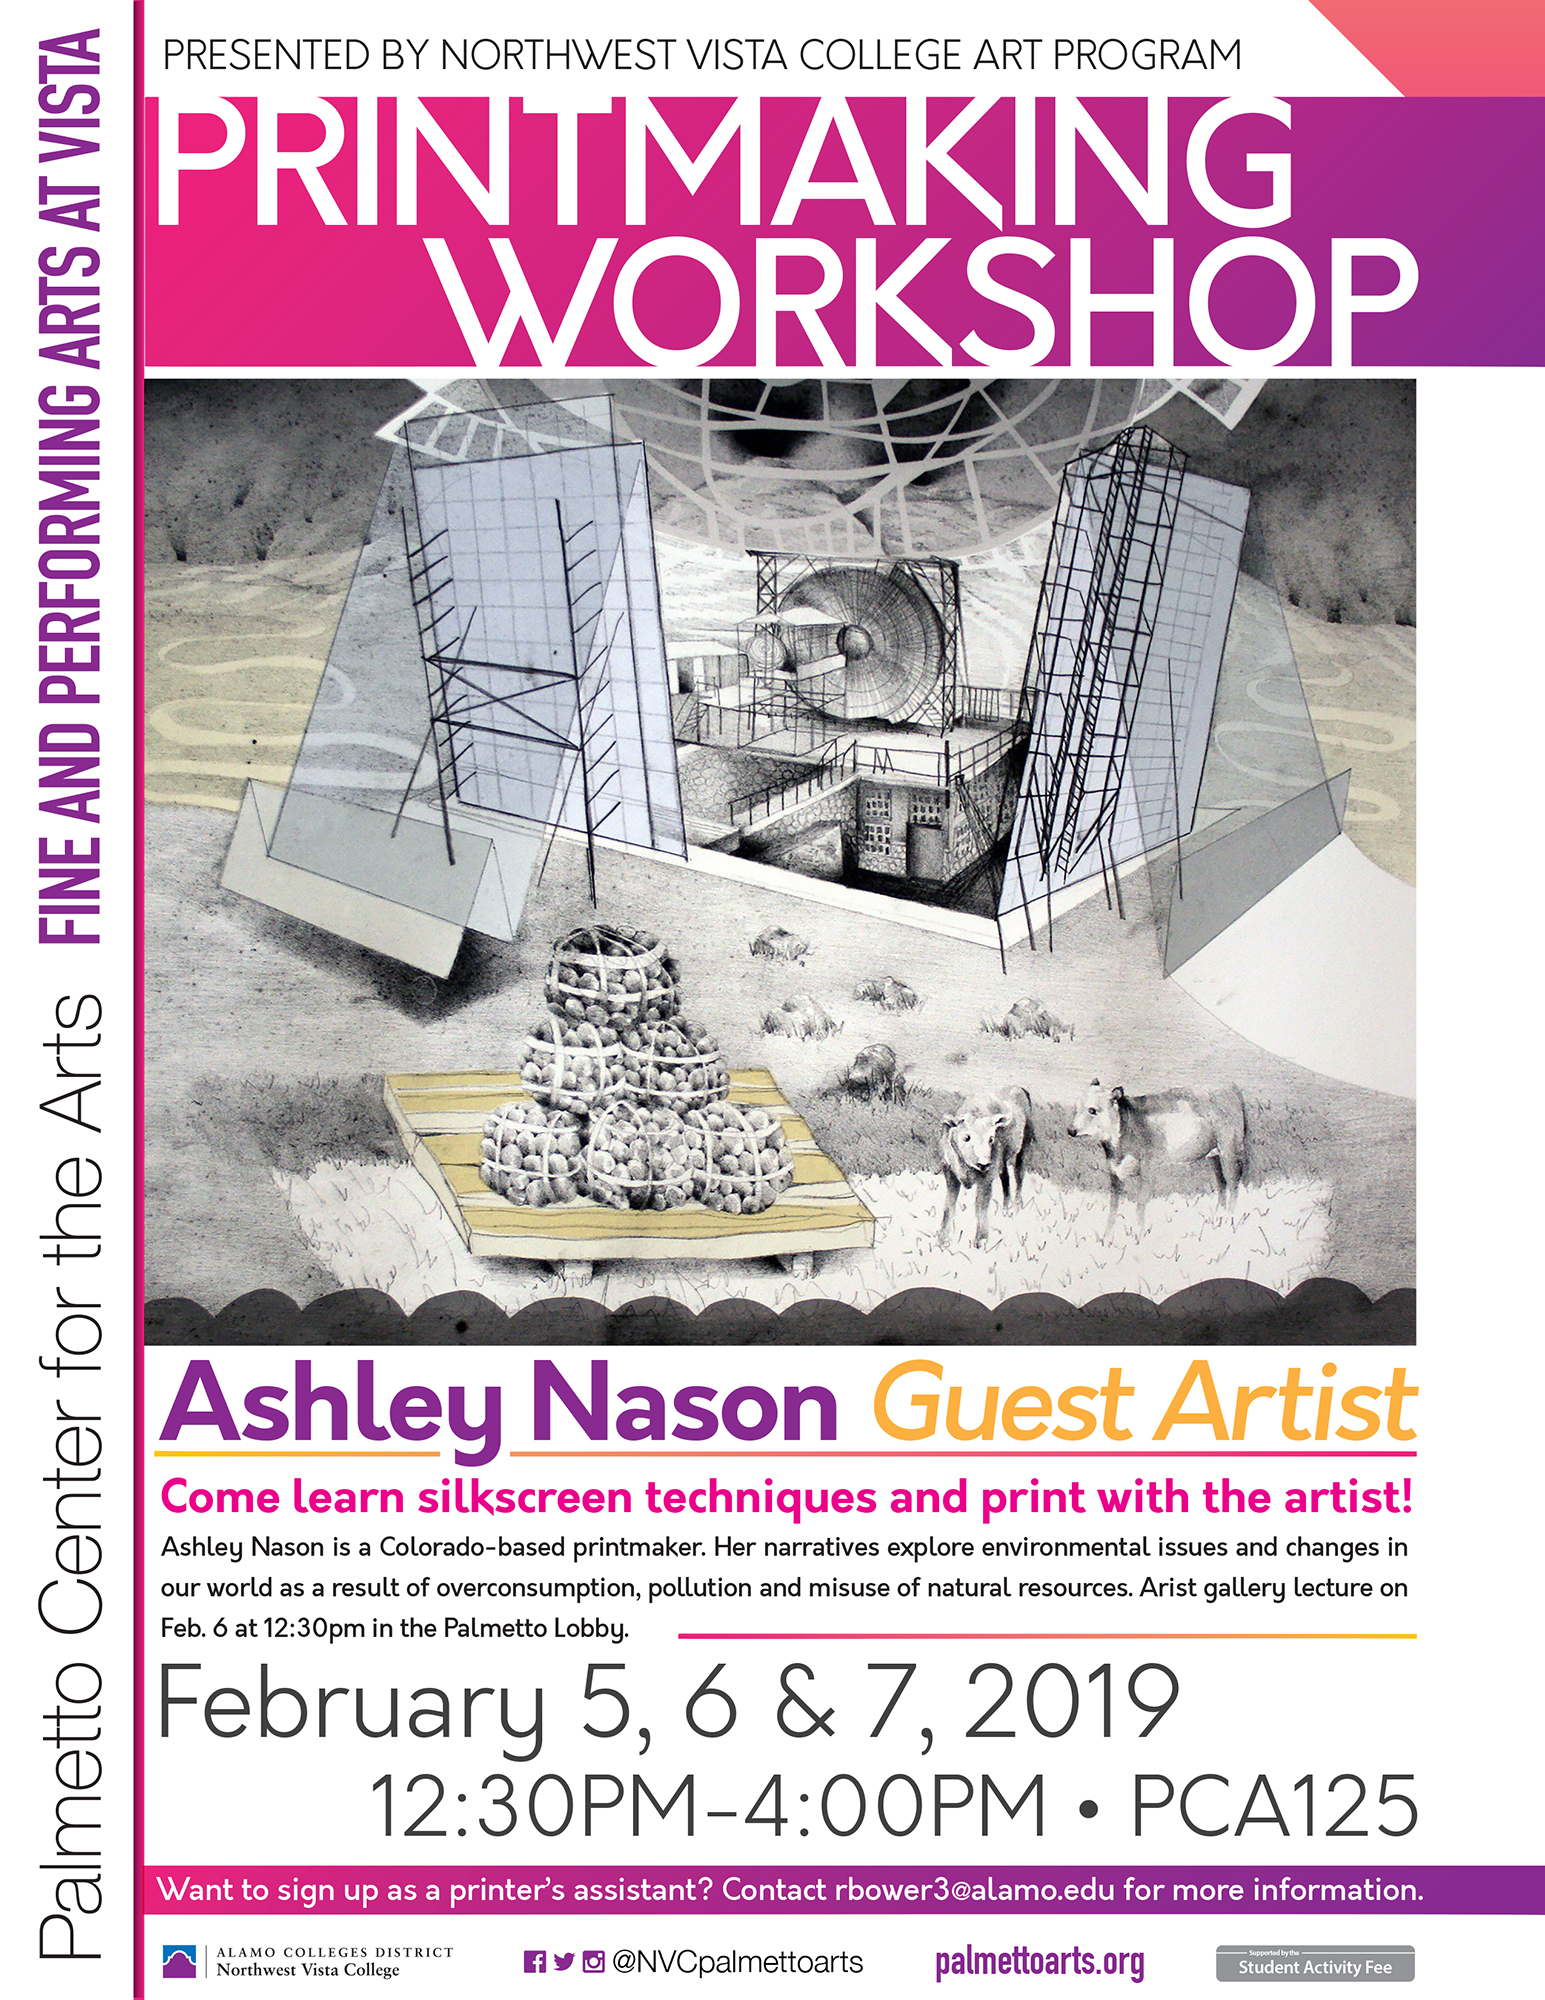 Ashley Nason printmaking workshop